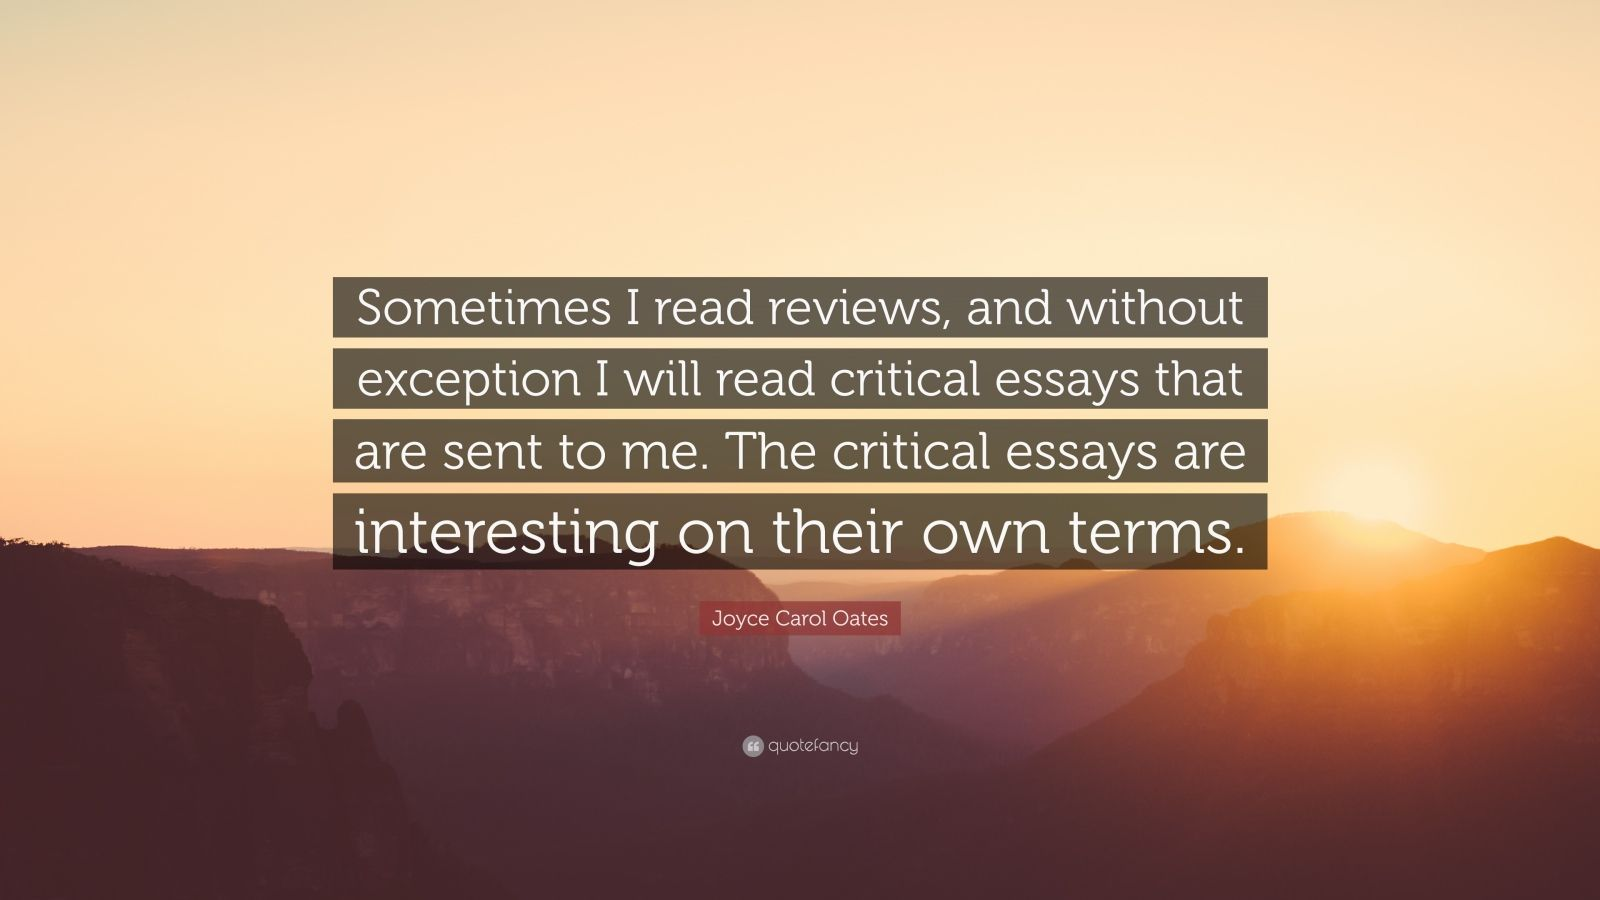 joyce carol oates essays kate chopin essay doorway in rough  joyce carol oates quotes quotefancy joyce carol oates quote sometimes i reviews and out exception i